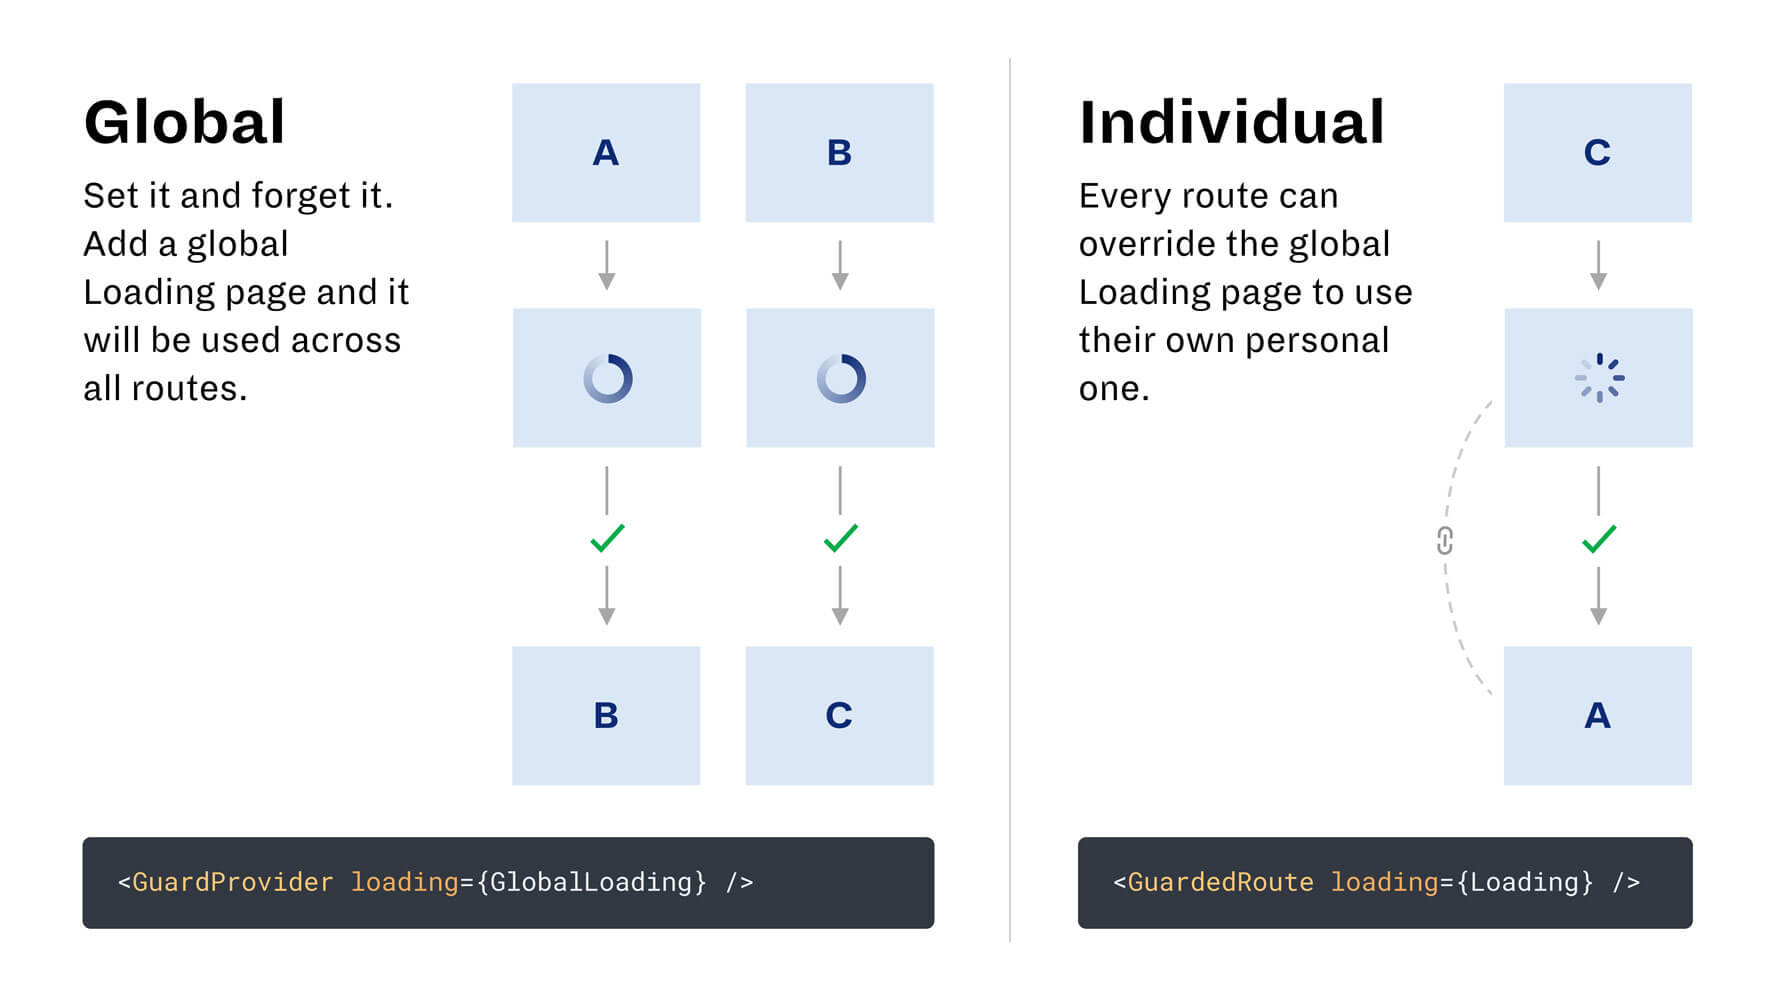 A slide illustrating the difference between global and individual loading pages.